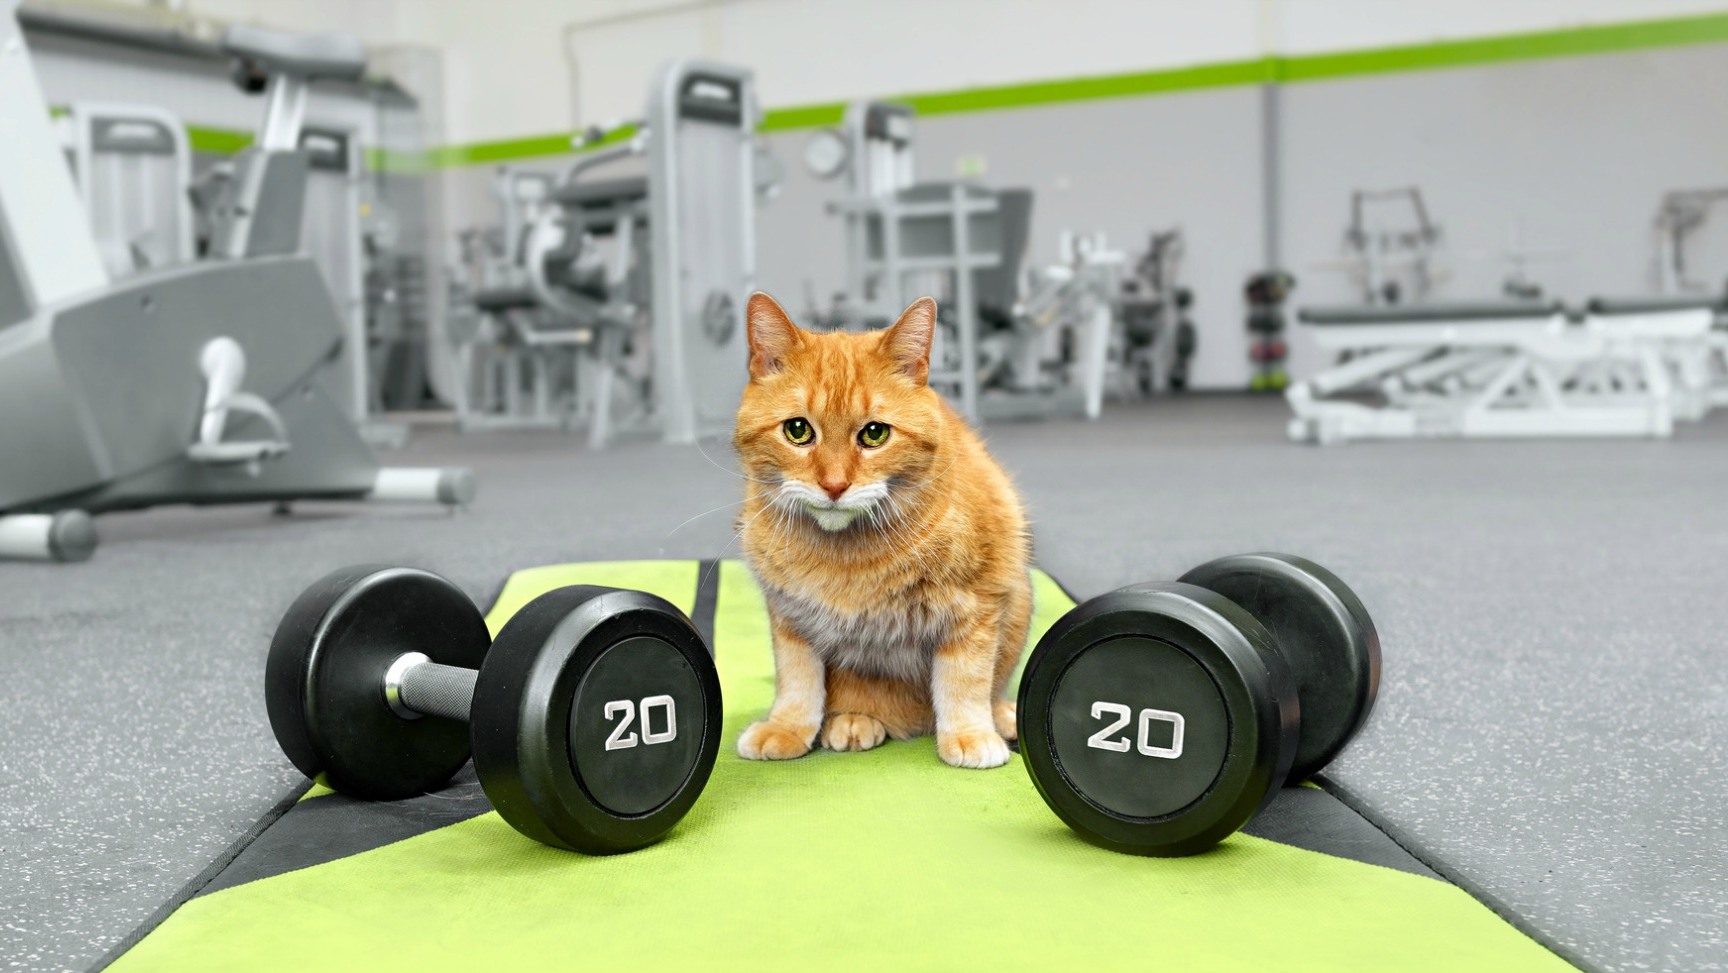 Get your indoor cat into shape